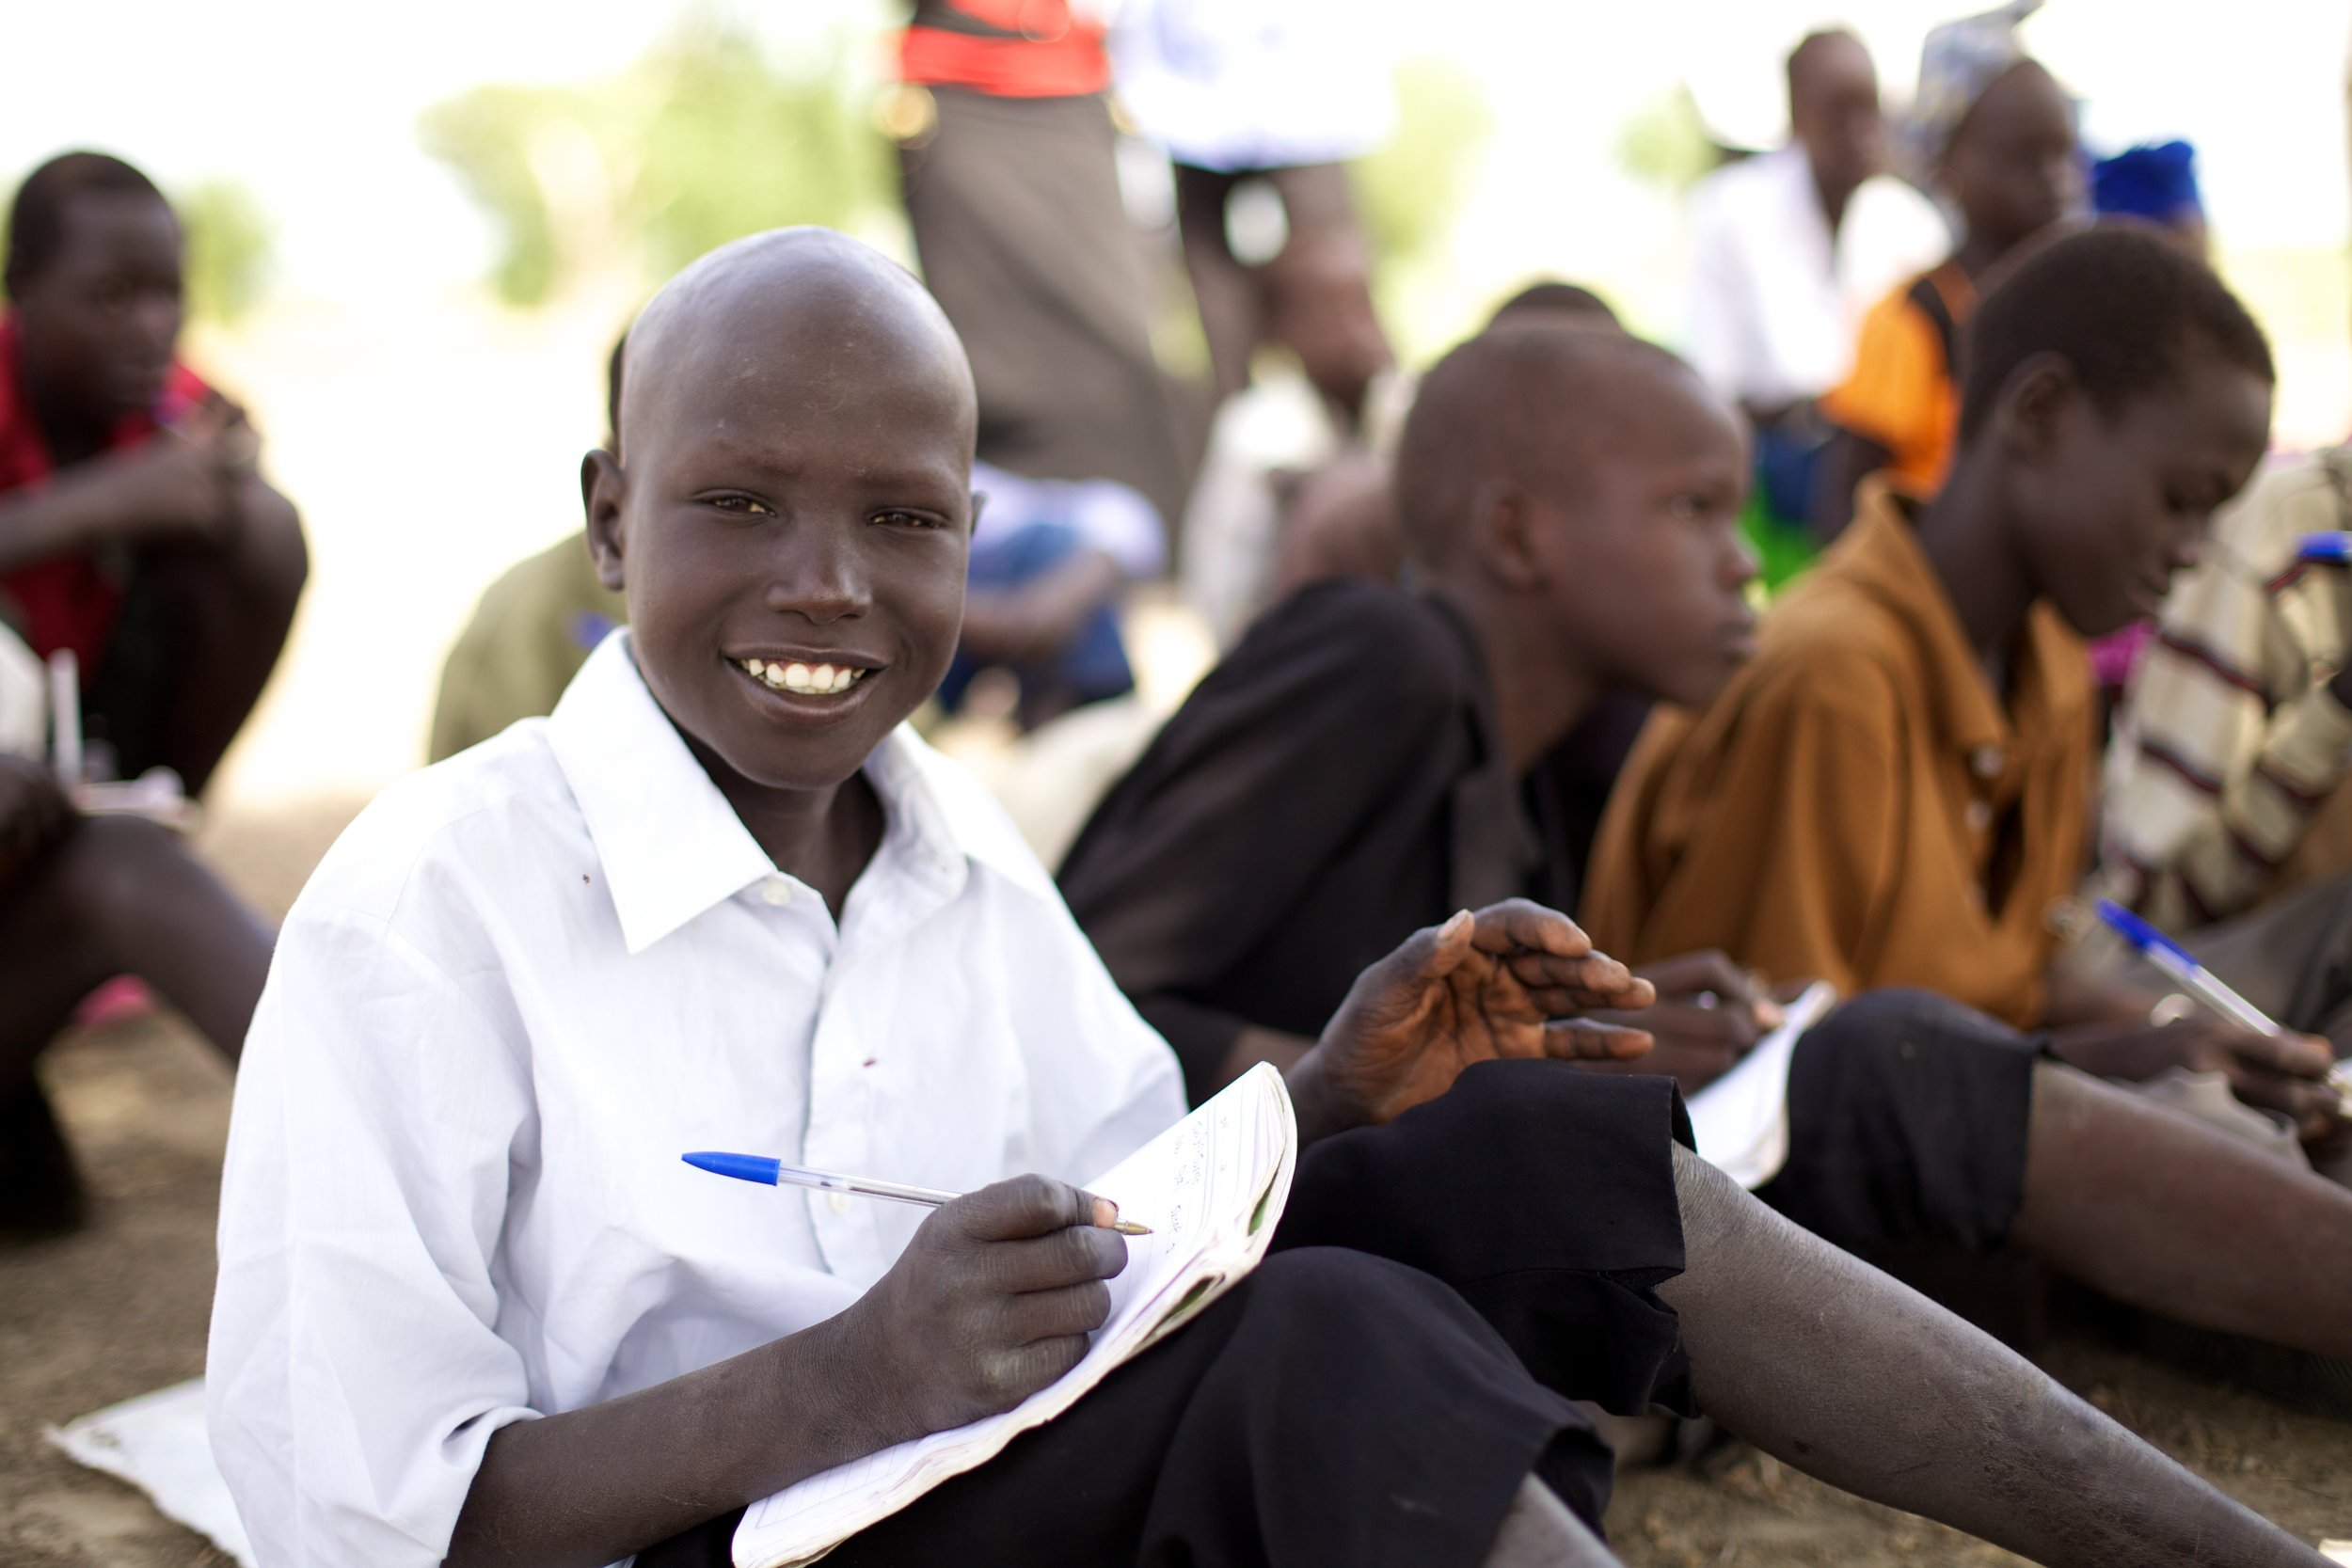 $35.00  Send a refugee child in South Sudan to school.